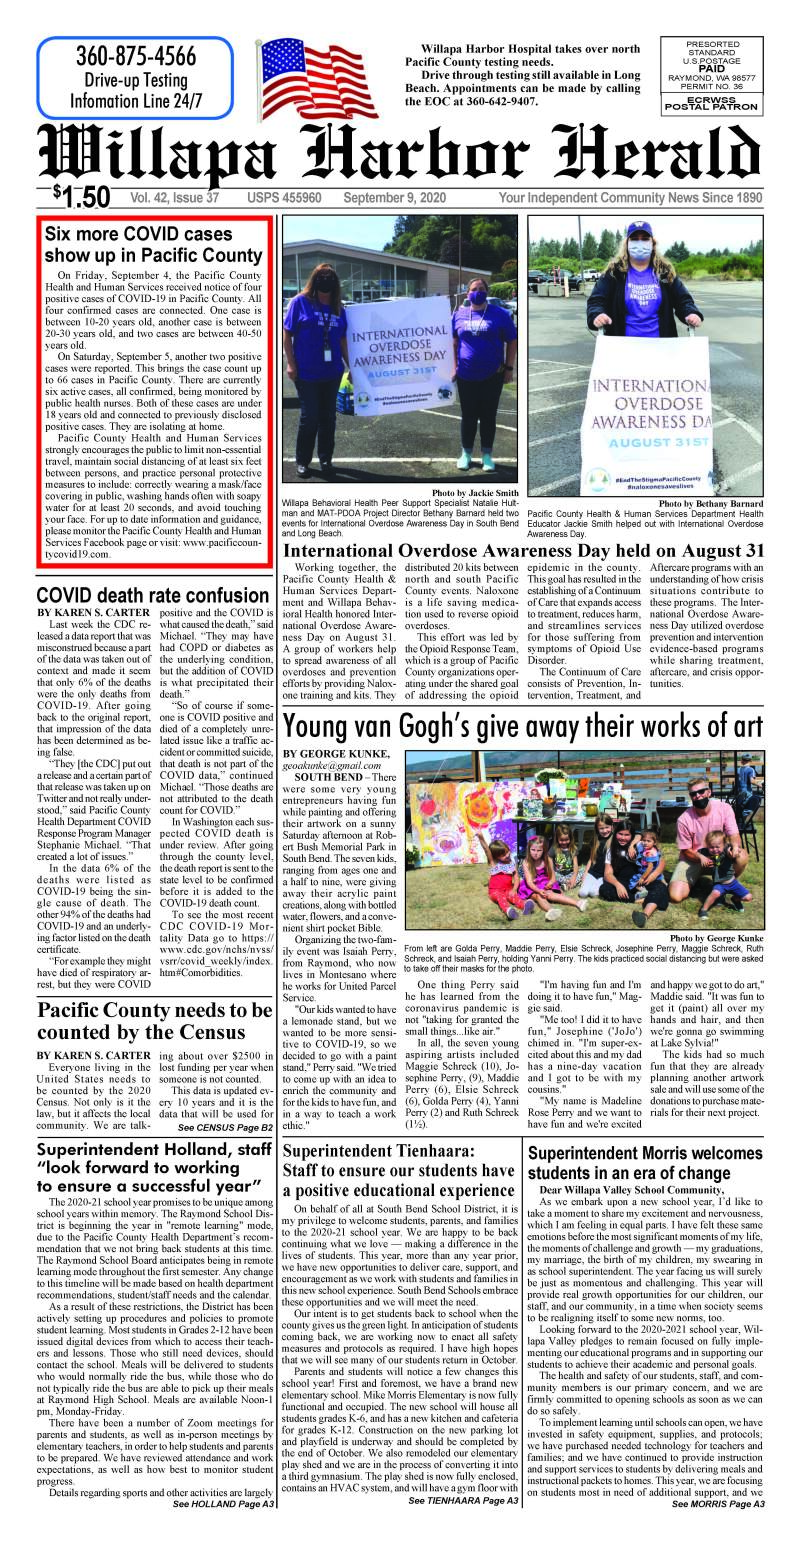 September 9, 2020 Willapa Harbor Herald and Pacific County Press